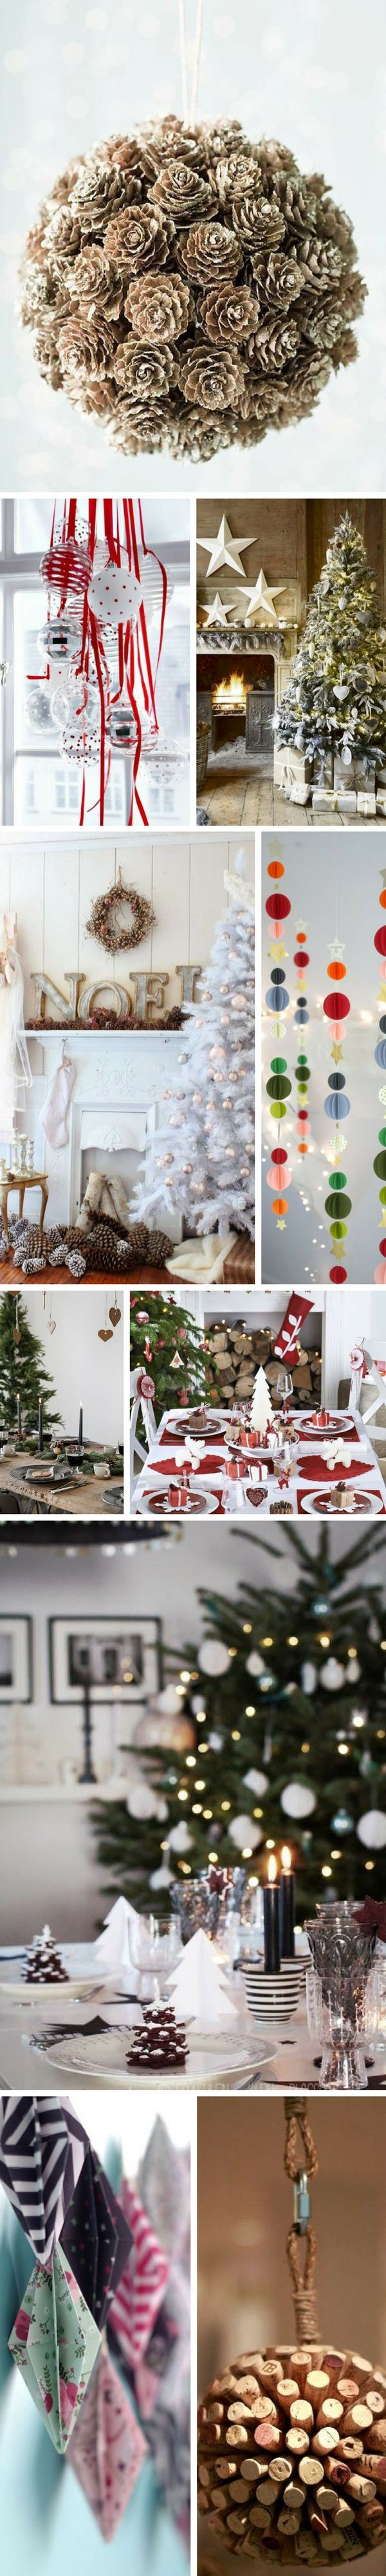 Top 25 best deco noel exterieur ideas on pinterest for Deco noel exterieur fabriquer